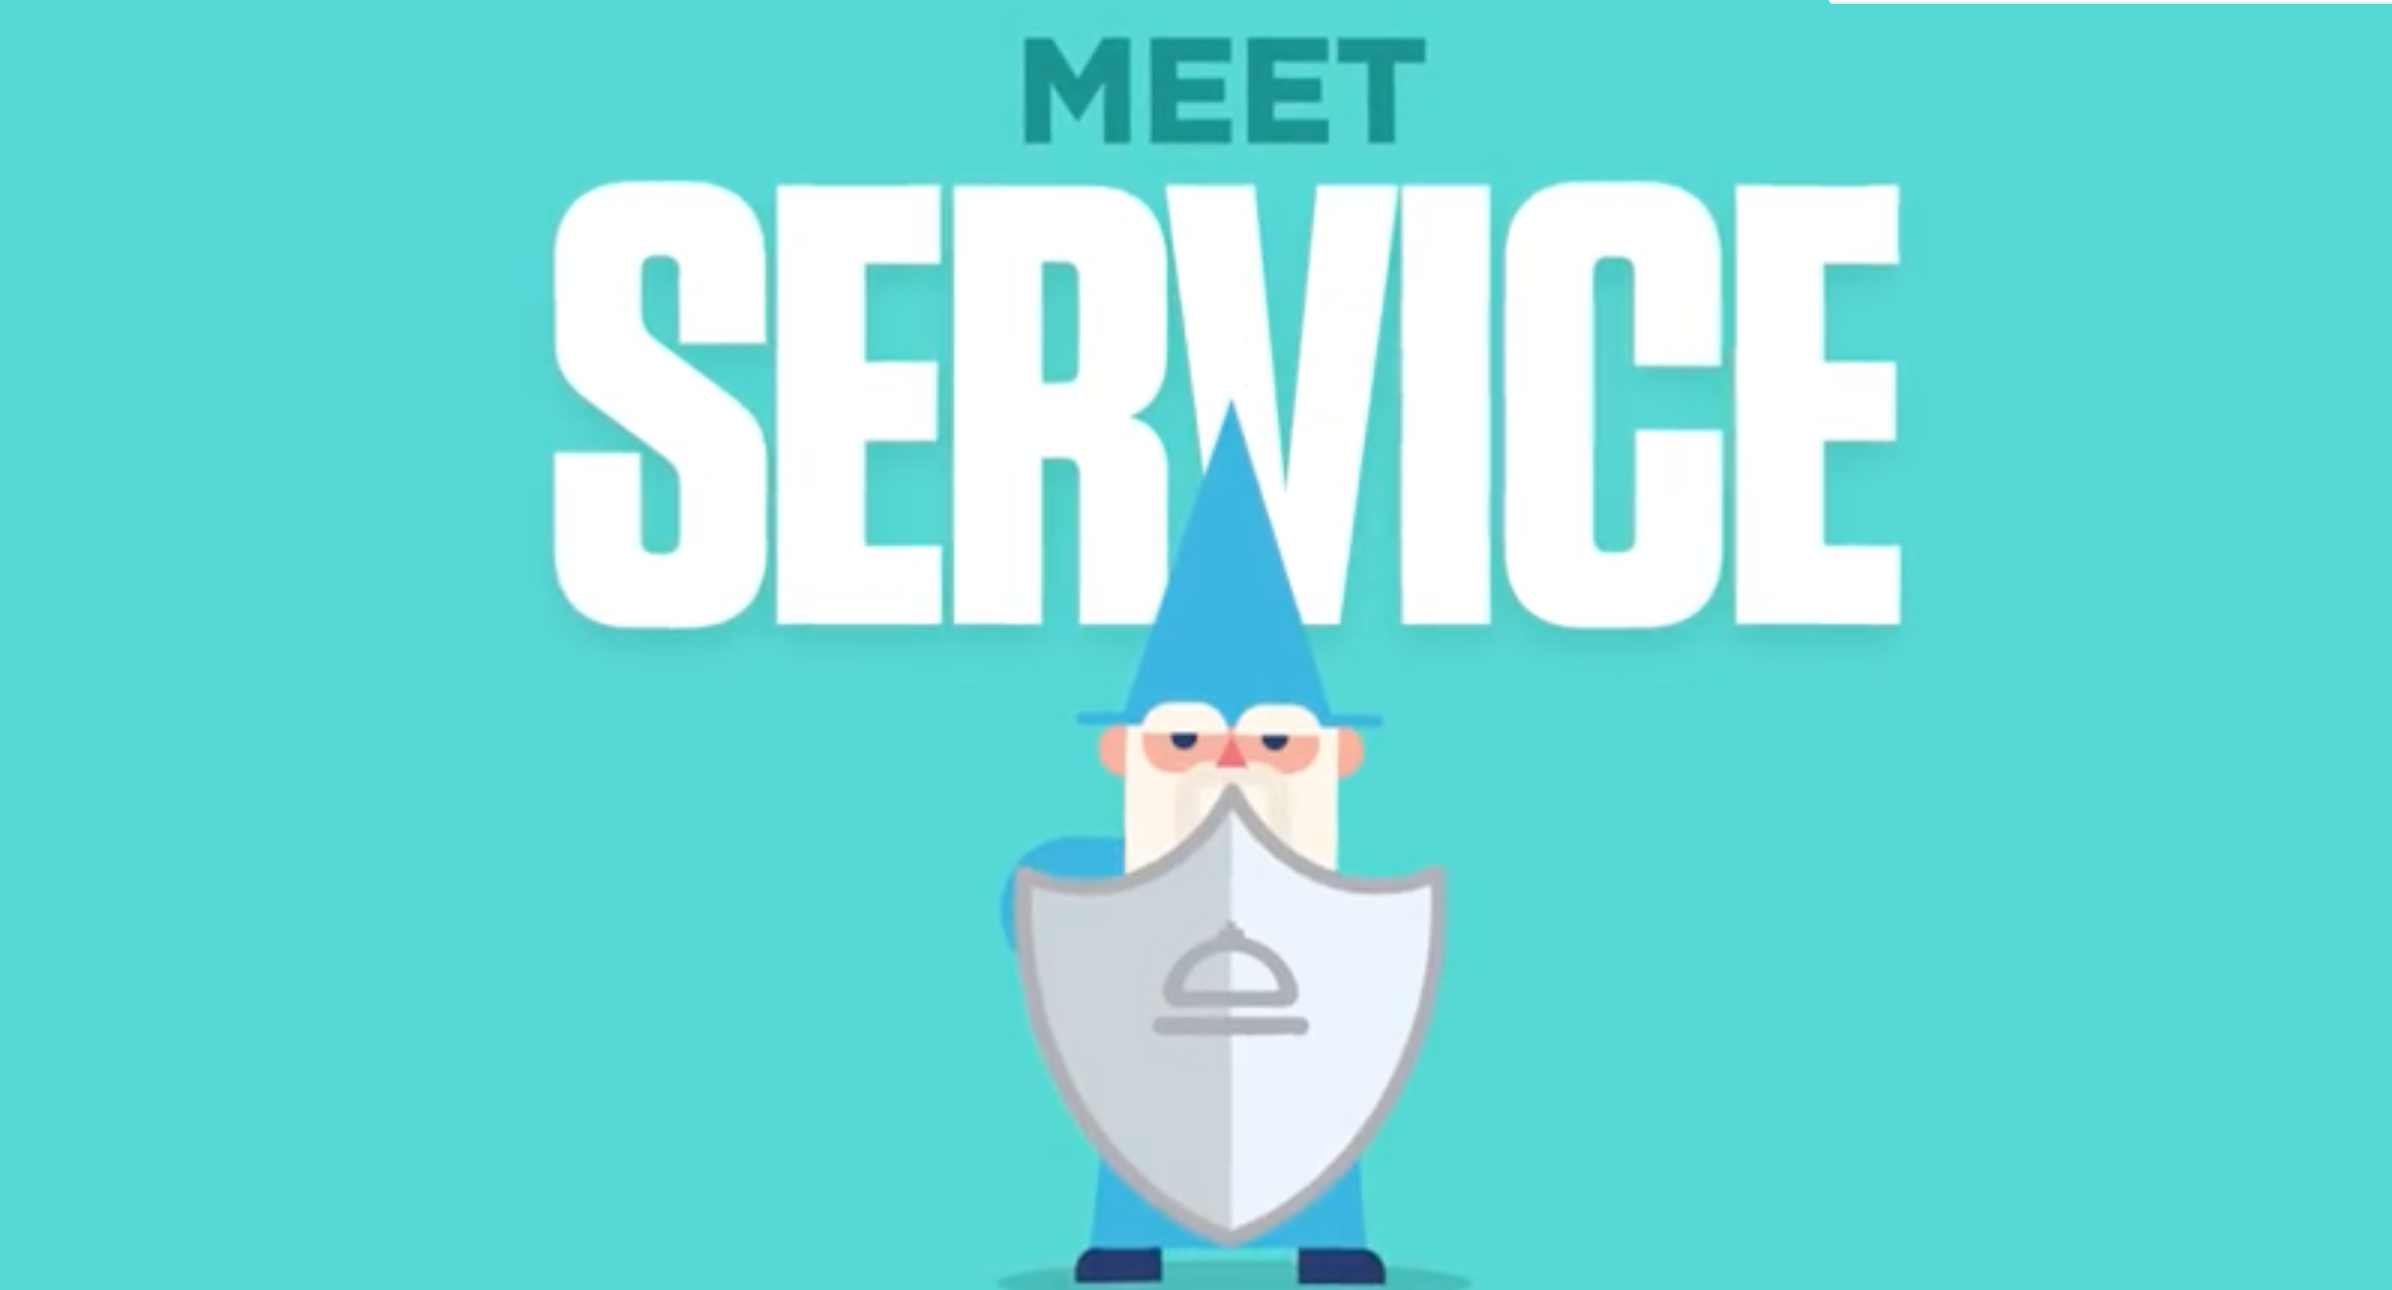 Get Service is the best travel service out there.